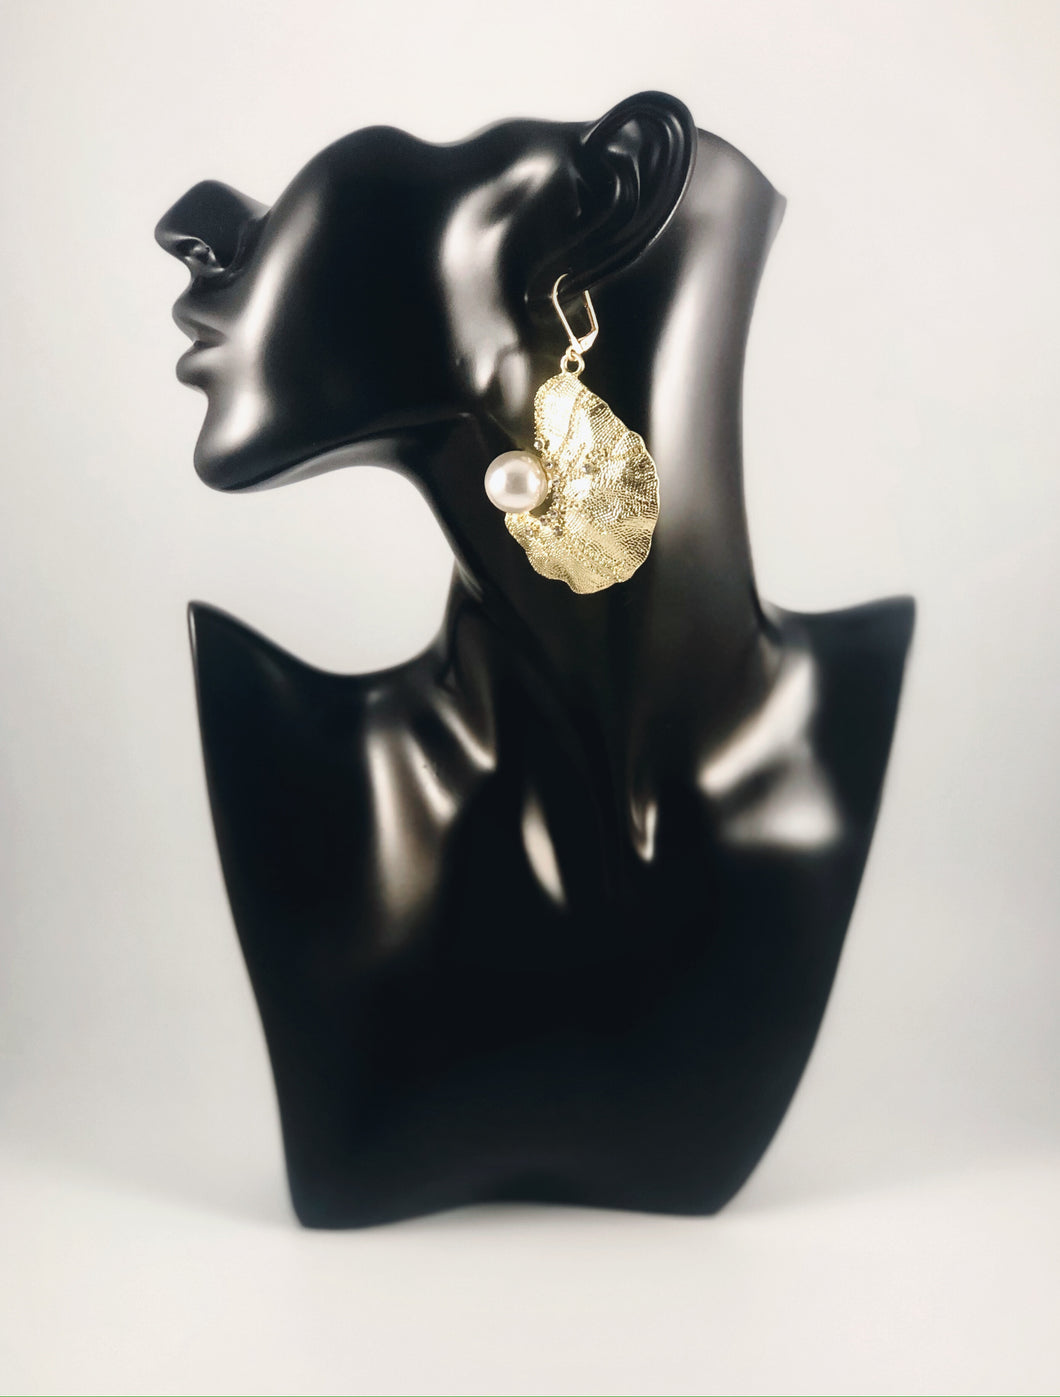 Biomorphic Gold Pearl with Rhinestone Details Dangle Earrings Color: Light Gold/White Approx. 2.5